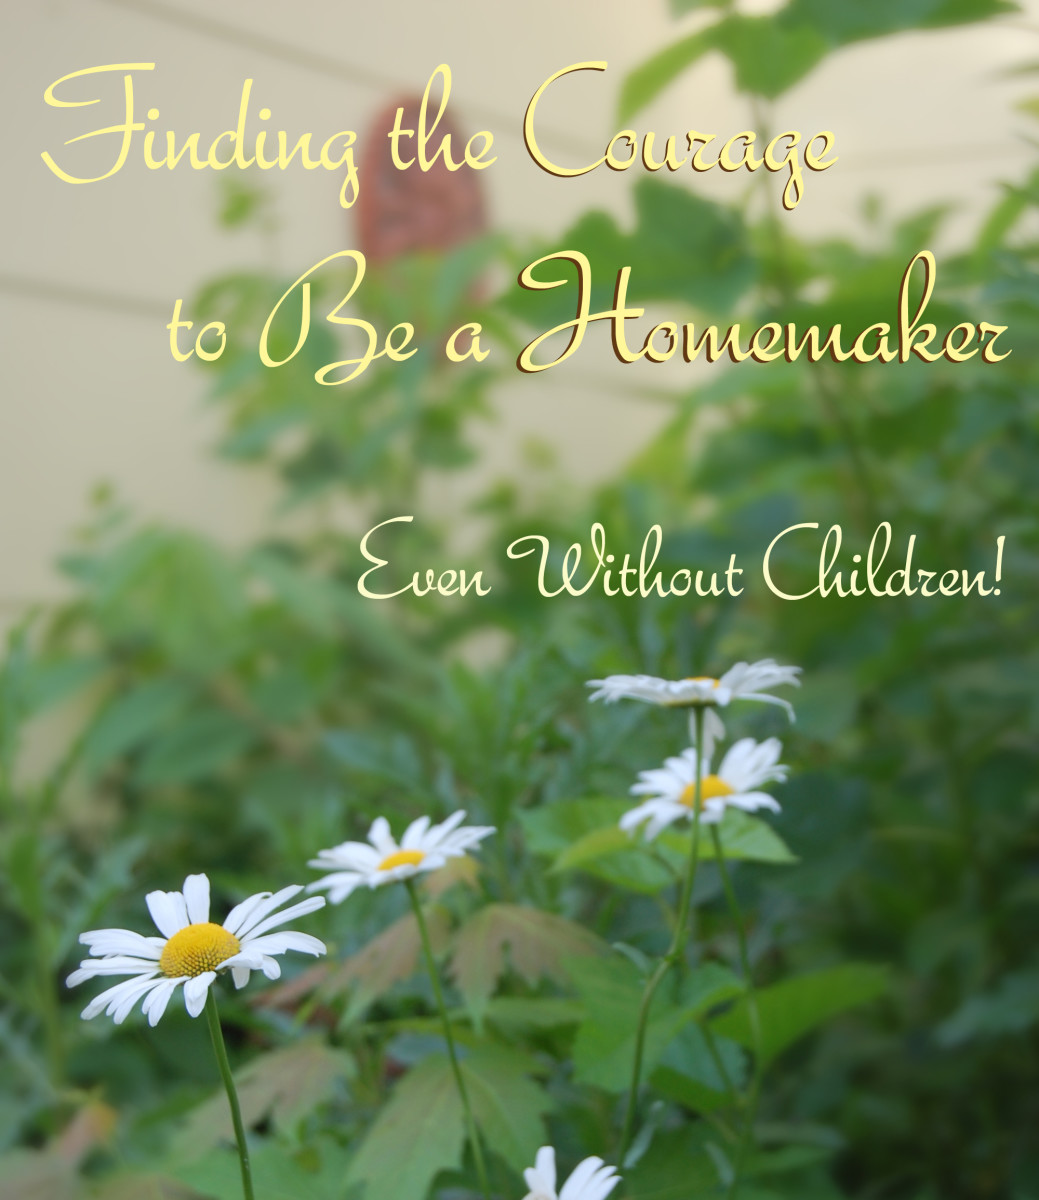 Find the Courage to Be a Homemaker-Even Without Kids!